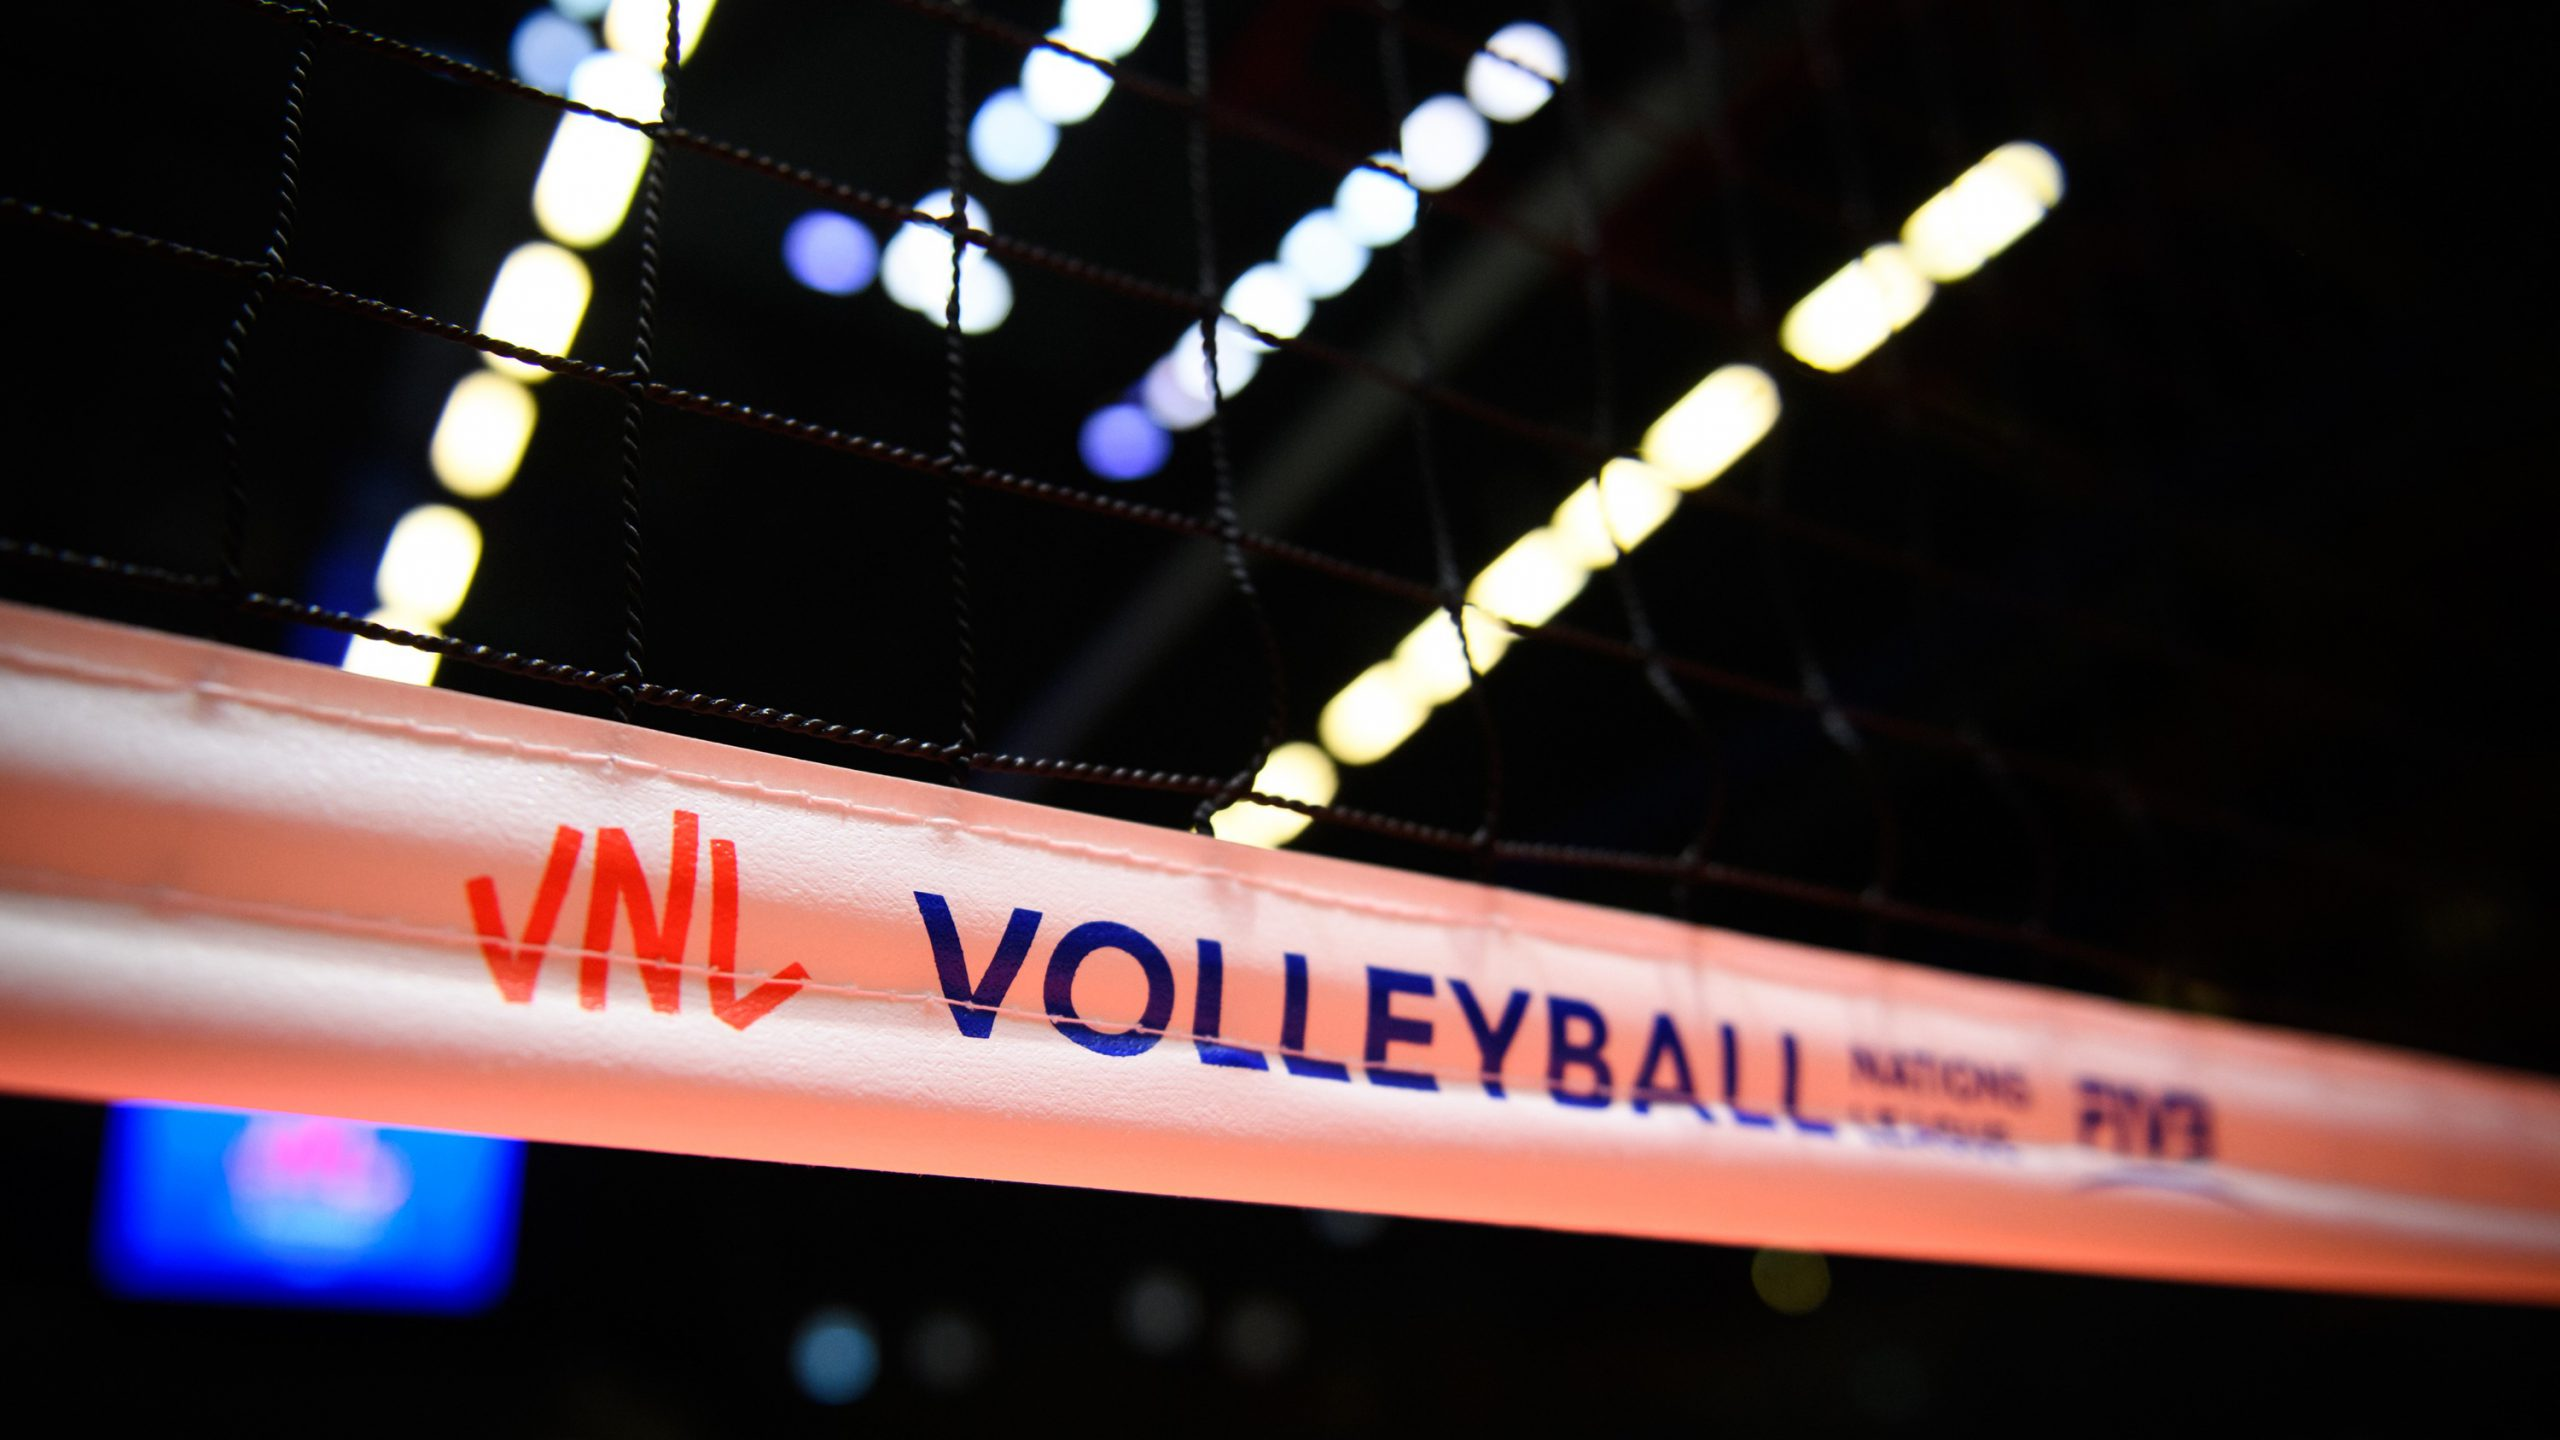 FIVB STATEMENT ON PARTICIPATING TEAMS AT VNL 2021